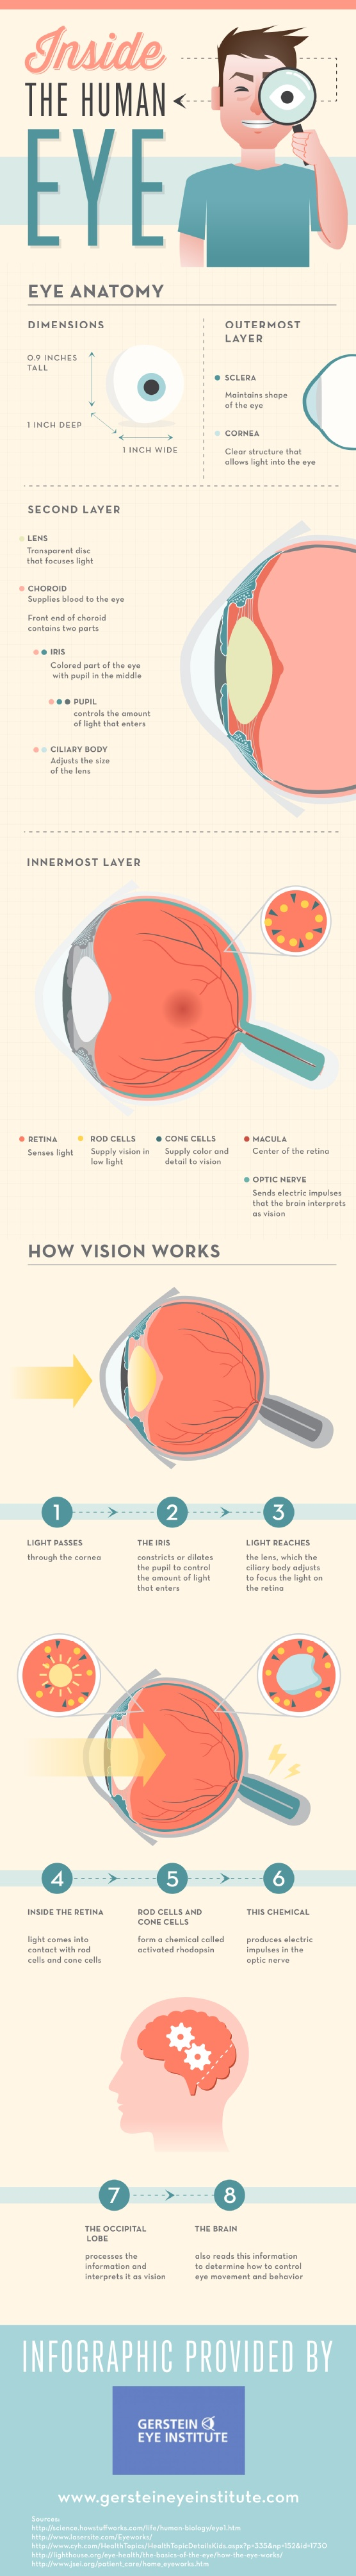 Inside the Human Eye [INFOGRAPHIC] | Nursing•Positive-Med ...